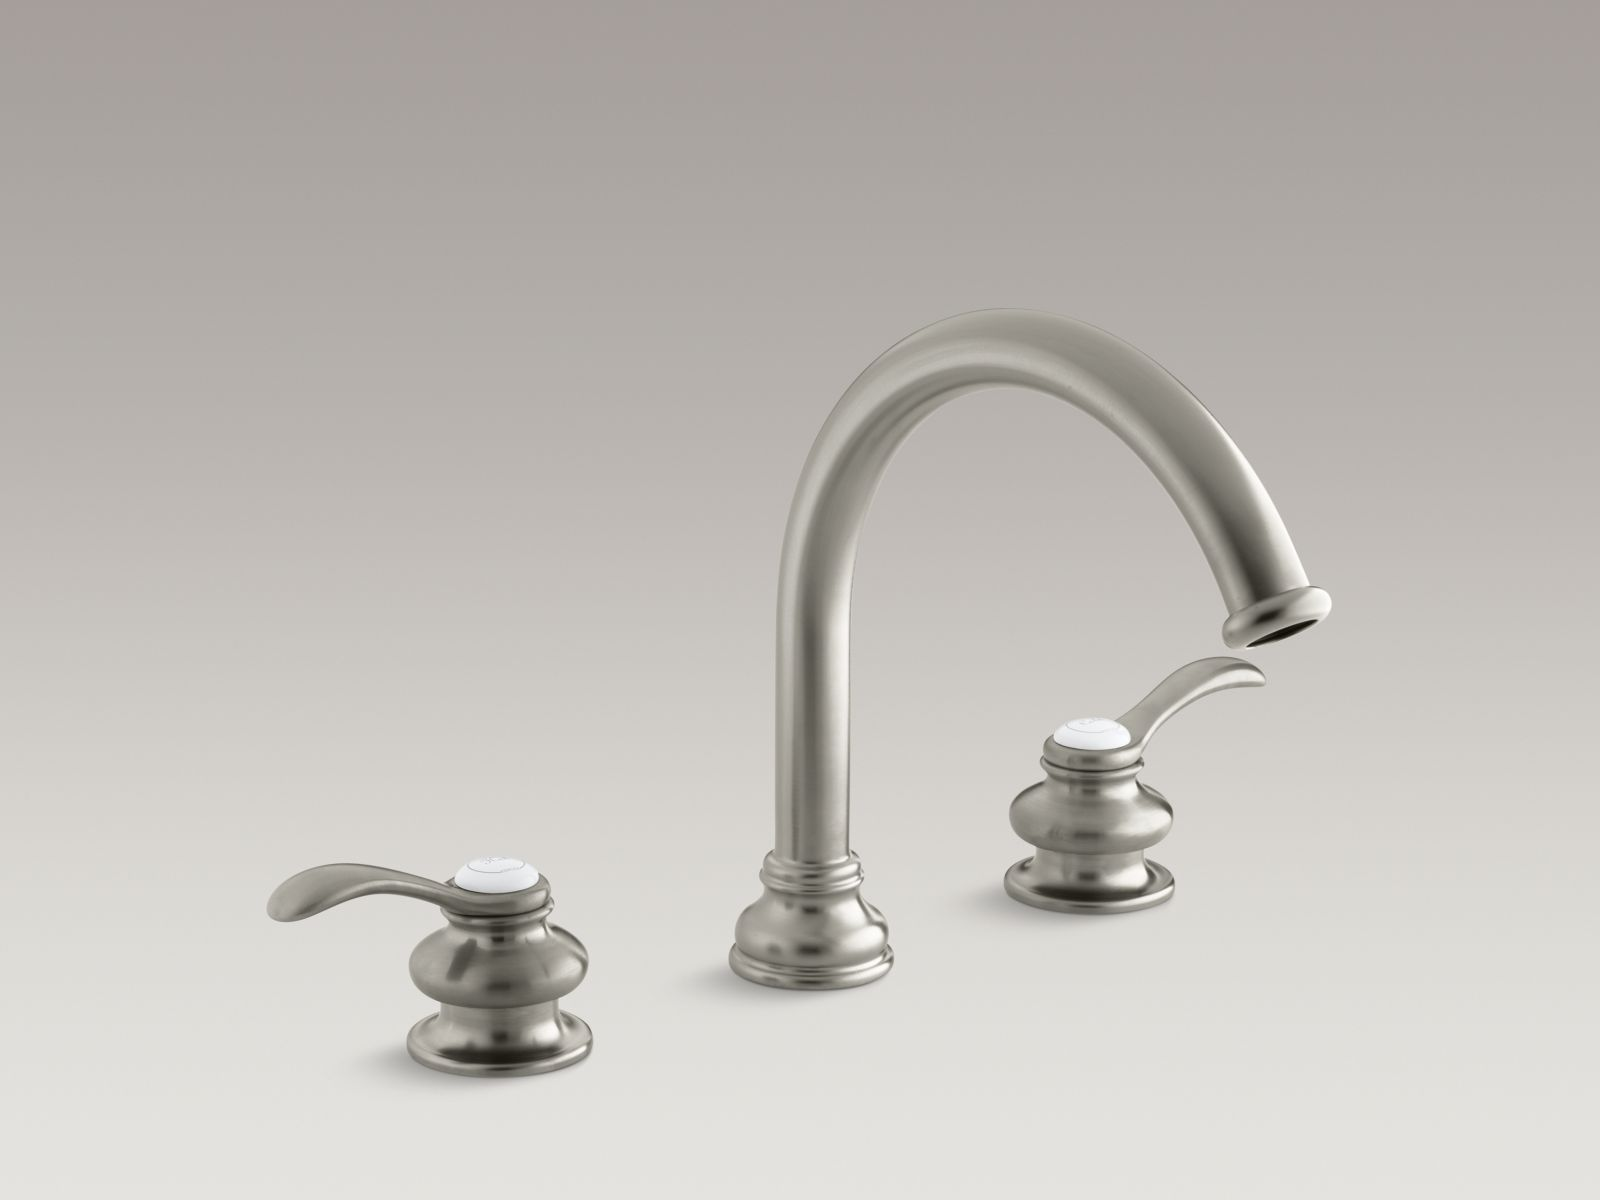 "Kohler Fairfax® K-T12885-4-BN Deck-mount bath faucet trim with lever handles and traditional 8-7/8"" non-diverter slip-fit spout, valve not included Vibrant Brushed Nickel"